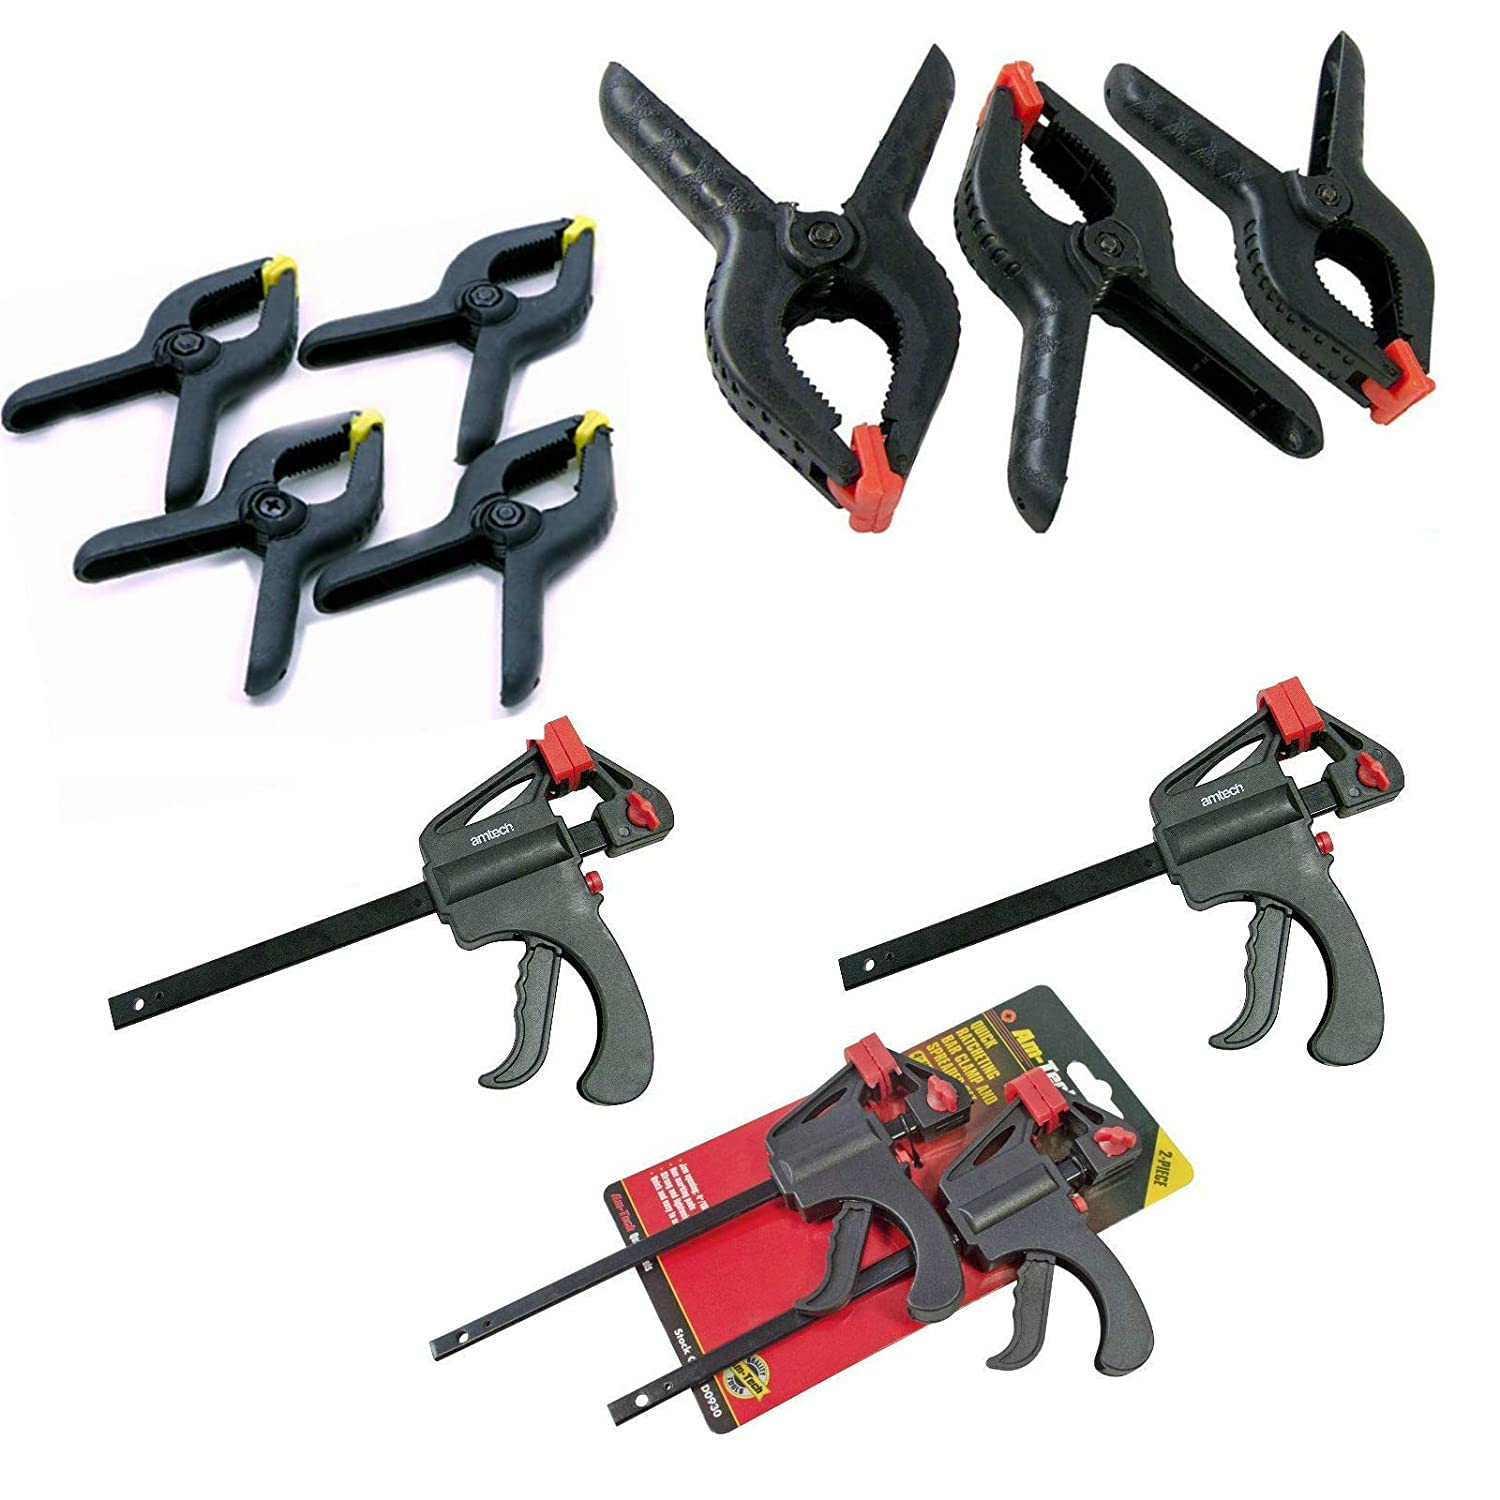 Clamps Quick Grip, Clamps for Woodwork Including Amtech 6' Heavy Duty Spring Clamps x 3, 4' & 6' Amtech Ratchet Clamps & Spring Clamp Grips Clamps for Woodwork Including Amtech 6 Heavy Duty Spring Clamps x 3